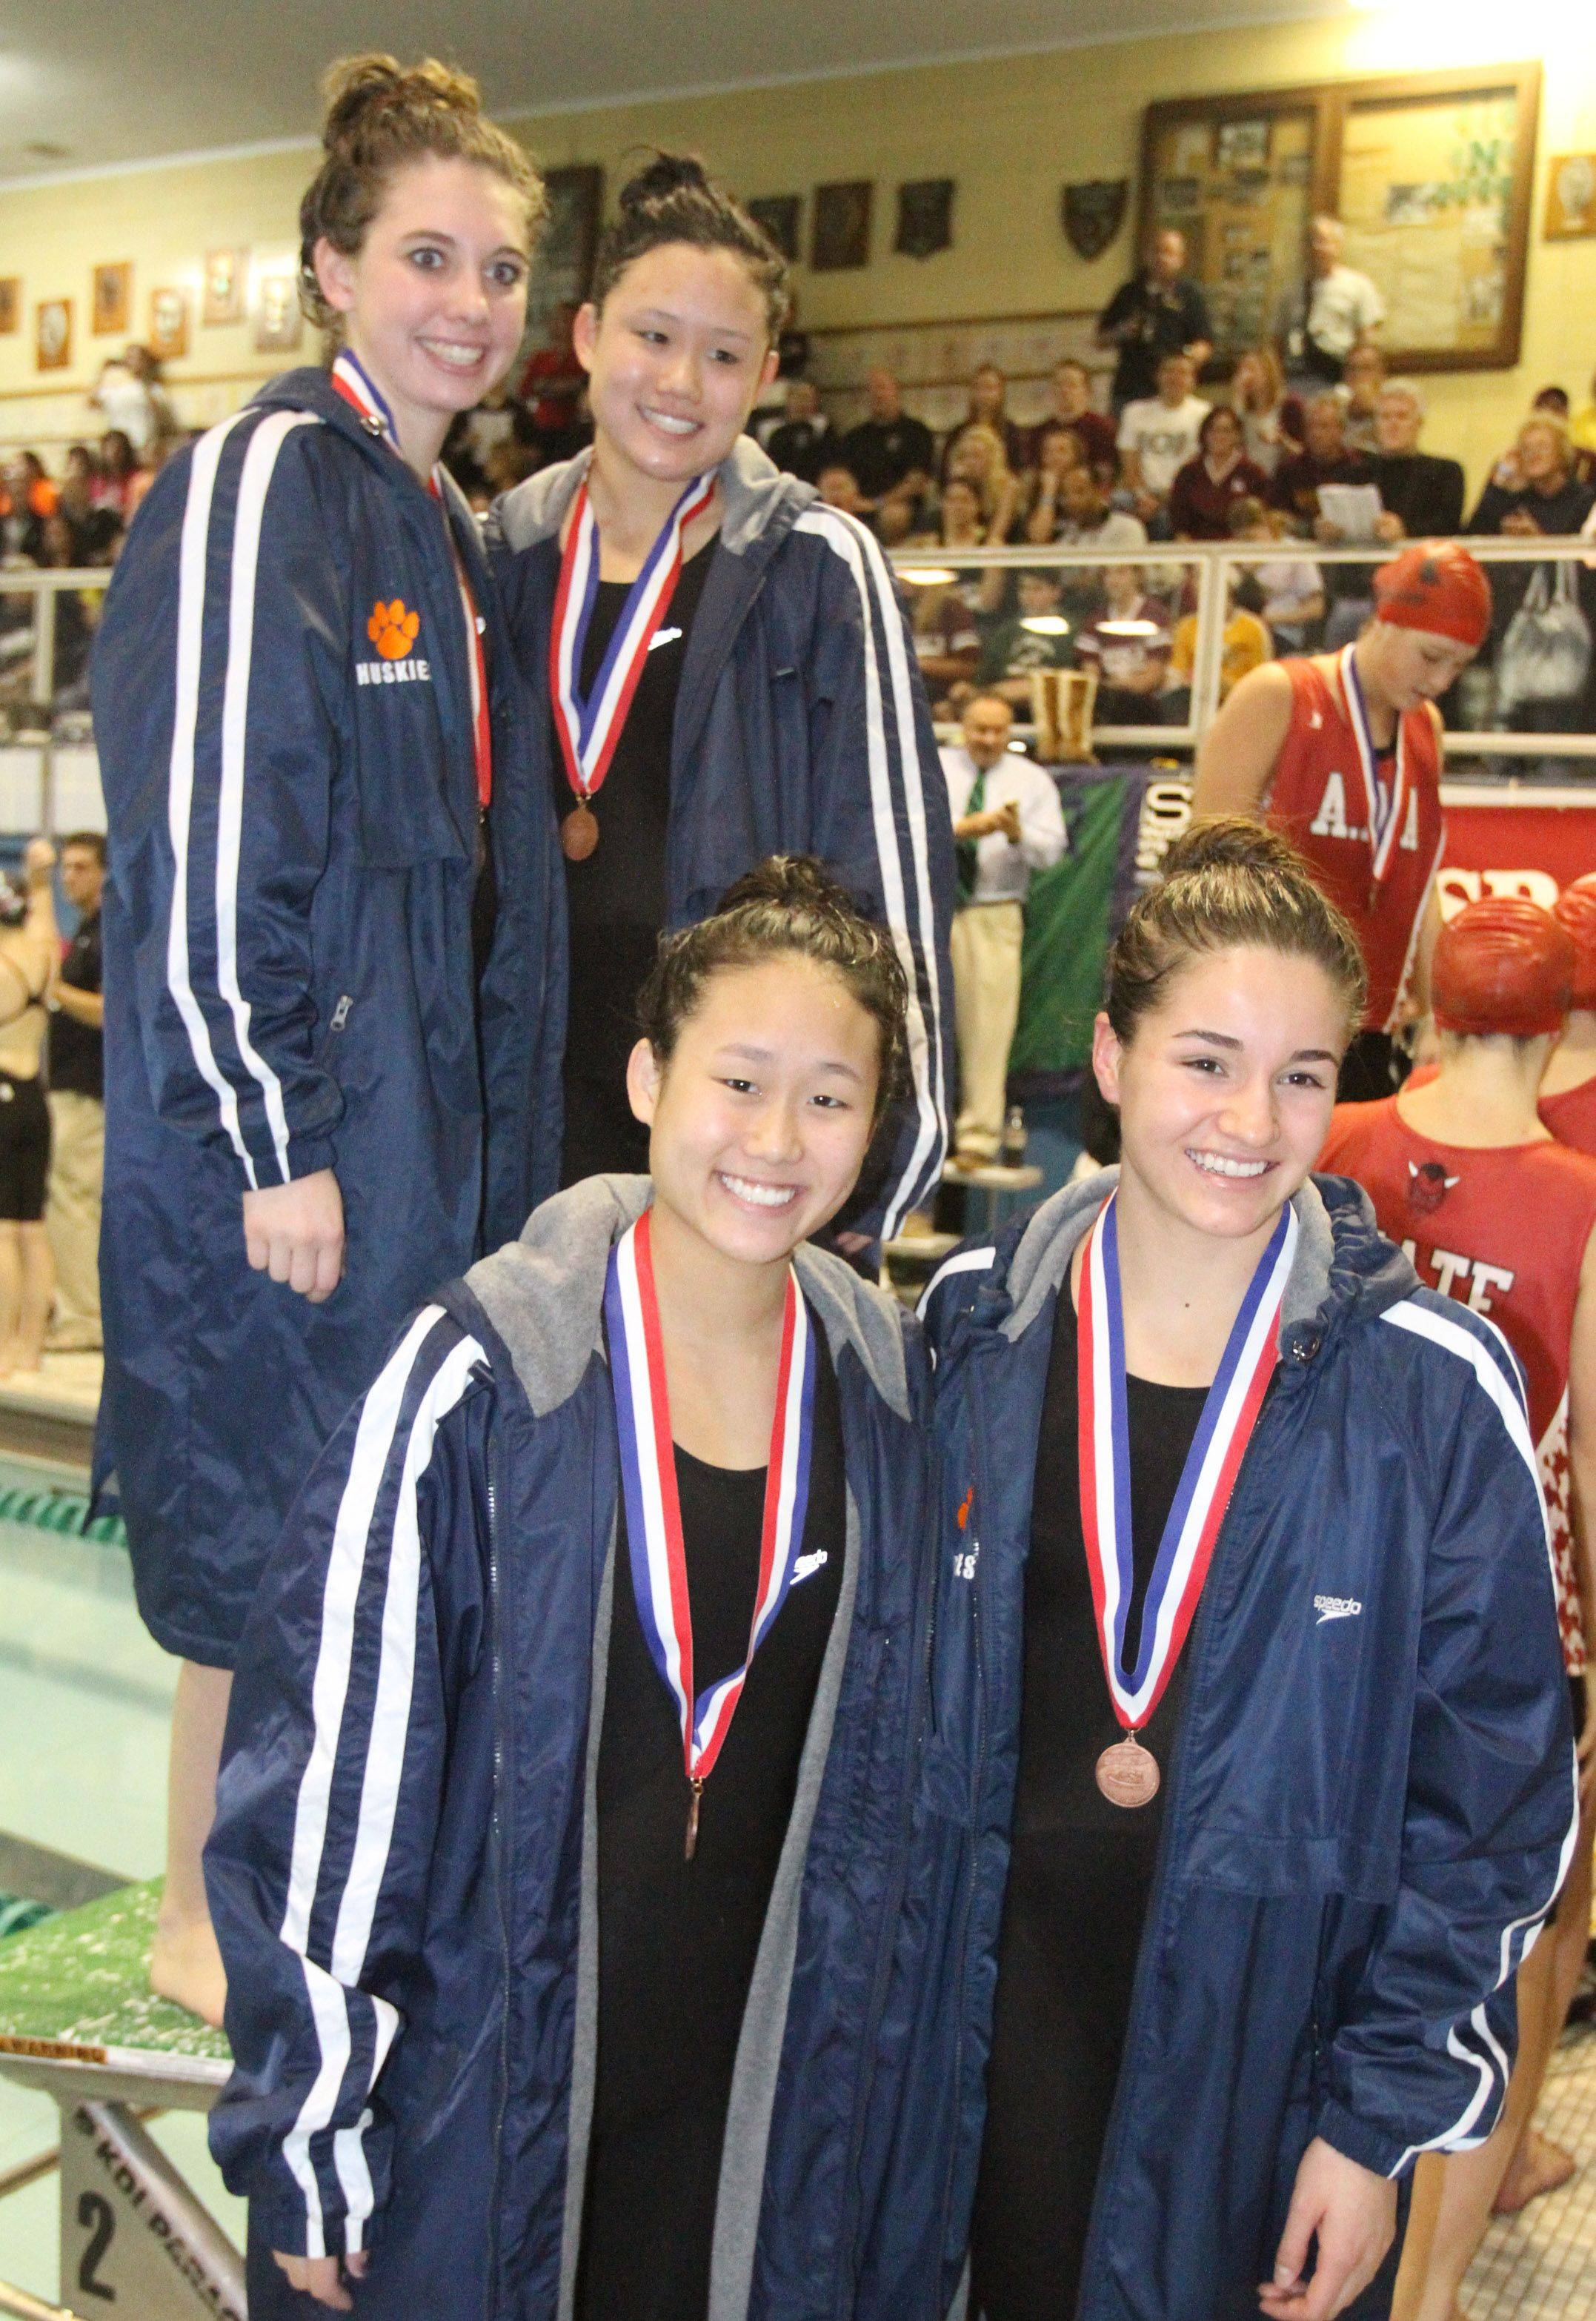 Naperville North's Michelle Law, Rachel Prorok, Jen Law, and Becca Bogle finished eighth in the 200-yard medley relay at the IHSA state championships in Winnetka on Saturday, November 19th.